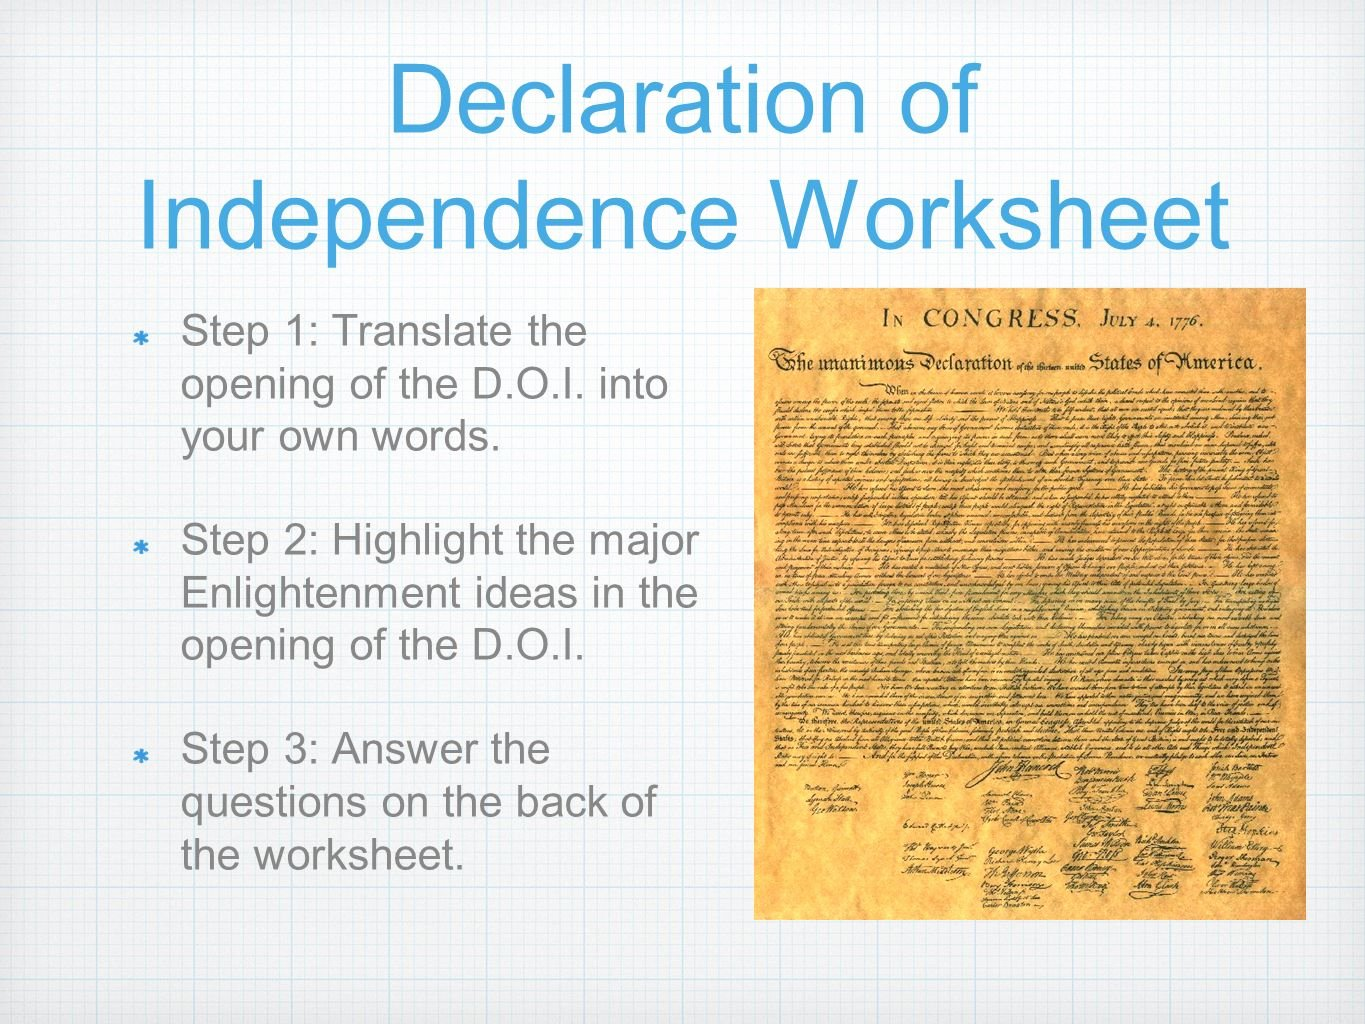 Declaration Of Independence Worksheet Answers Fresh John Locke and the Declaration Independence Worksheet